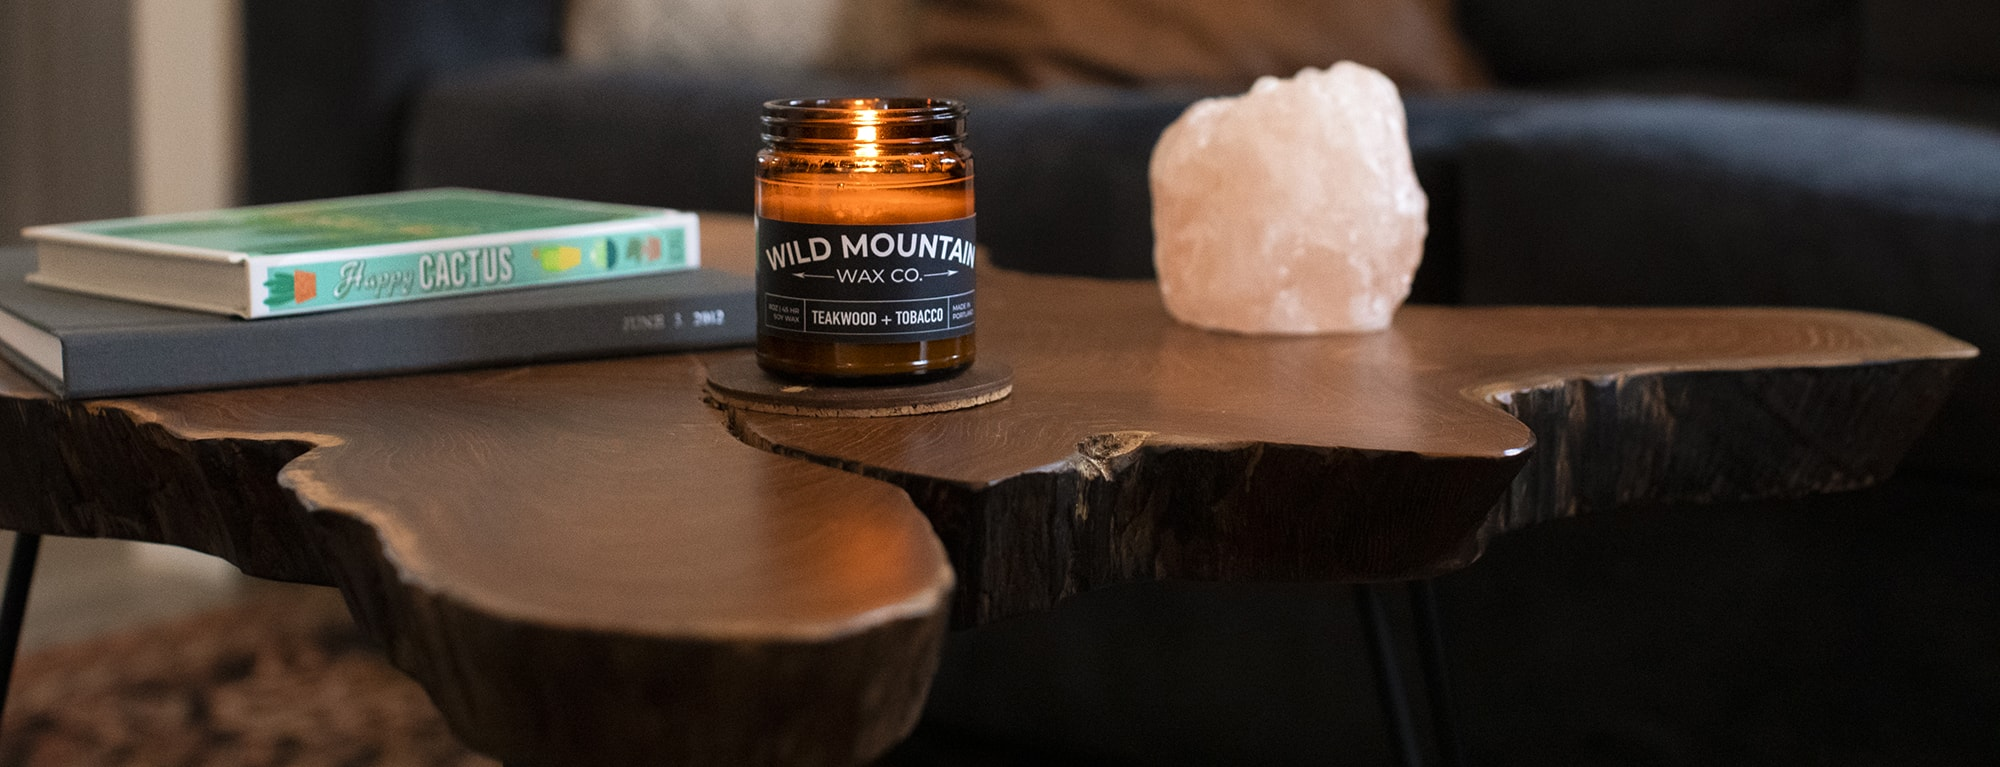 candle sitting on a wooden table